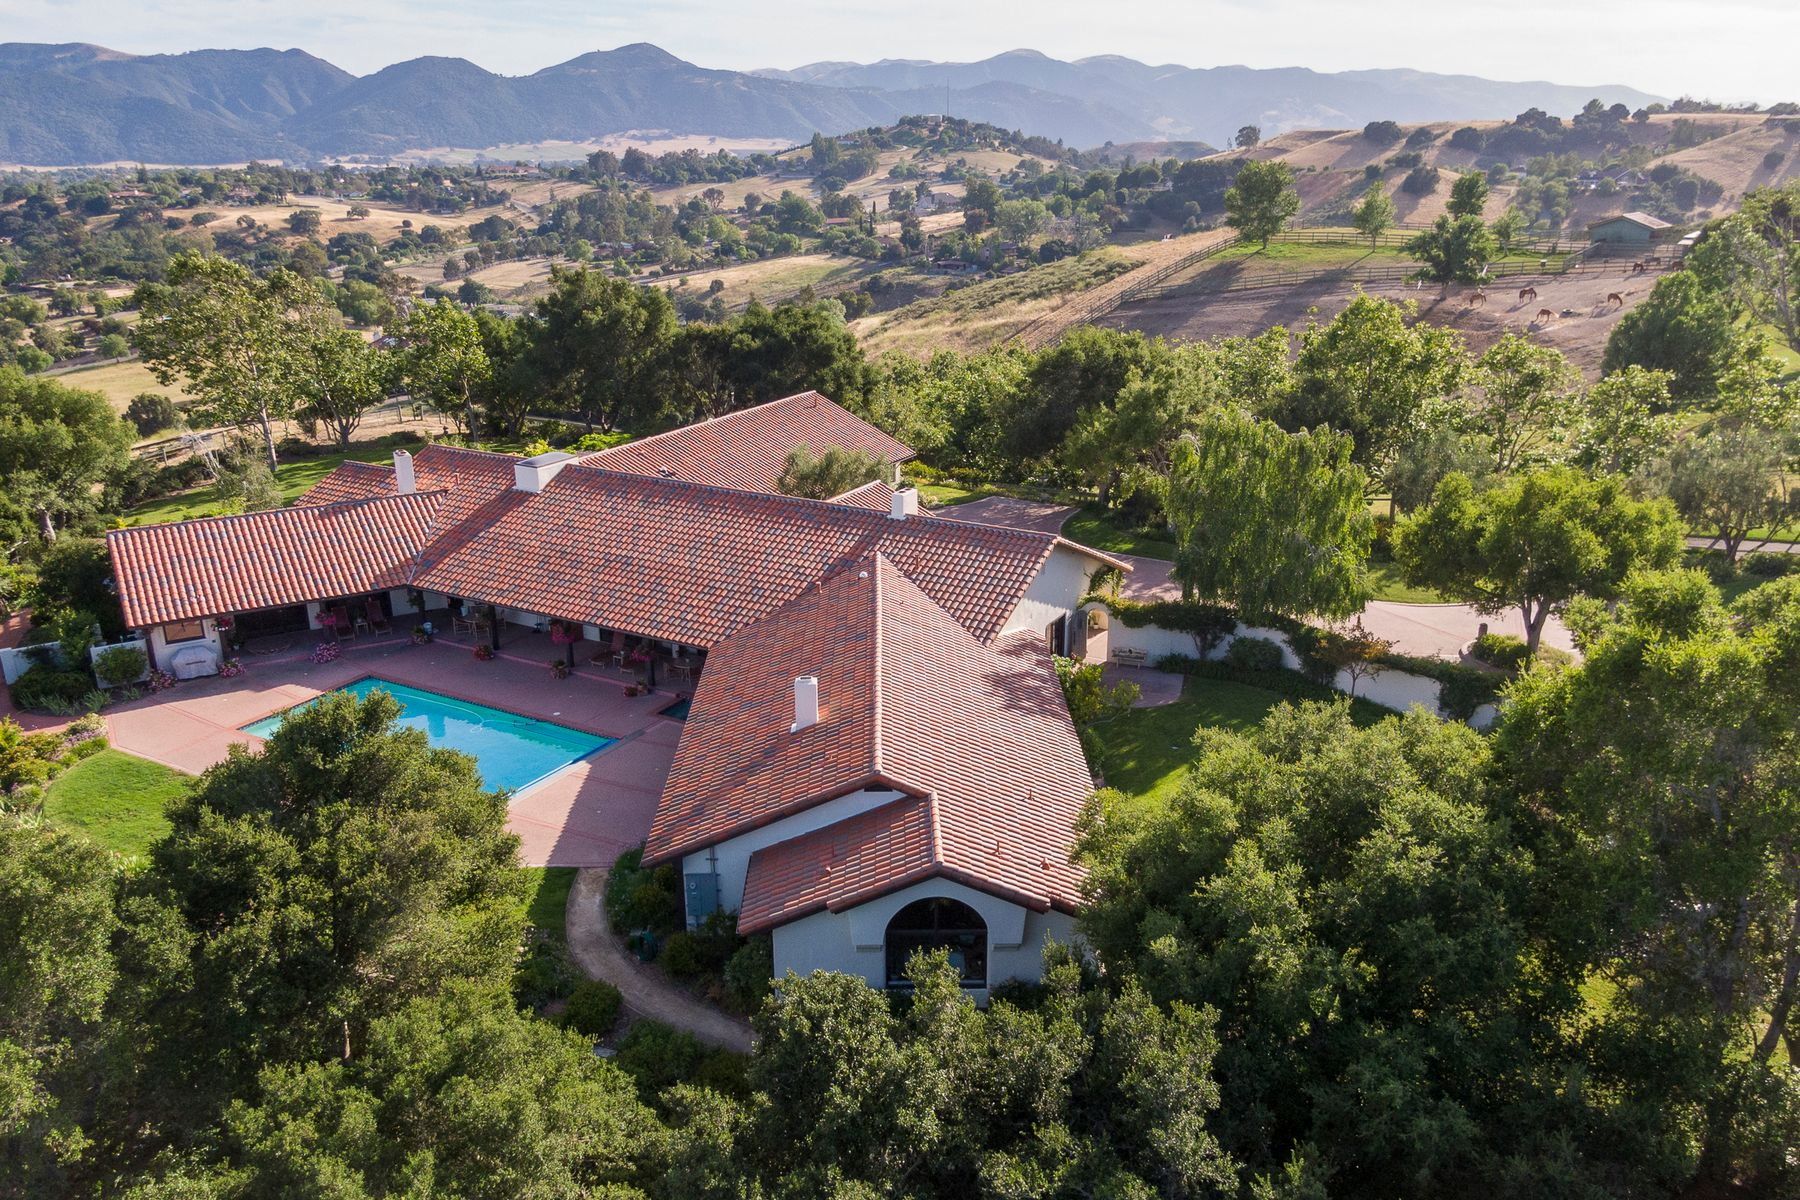 Vineyard Real Estate for Sale at 40 Acre Compound in the Heart of Solvang 1132-1230 Fredensborg Canyon Road Solvang, California 93463 United States